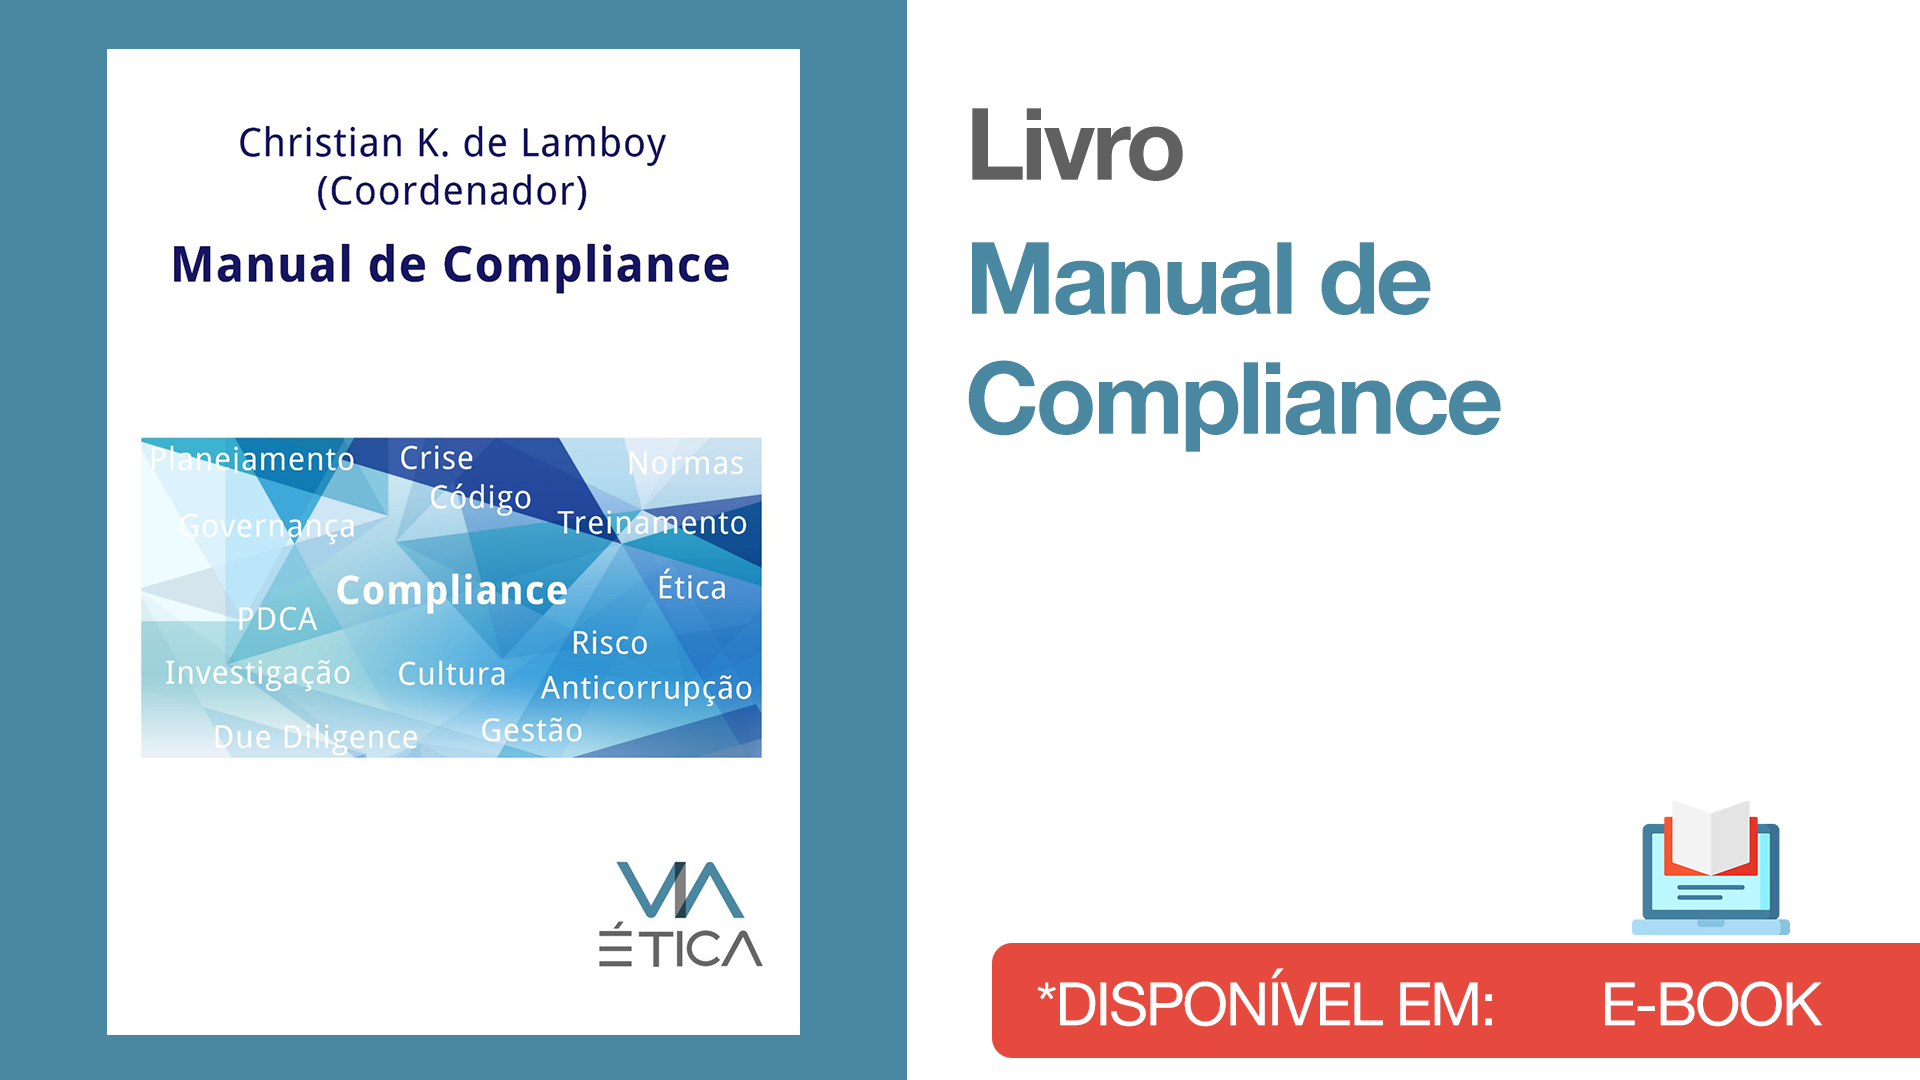 Livro Manual de Compliance E-book